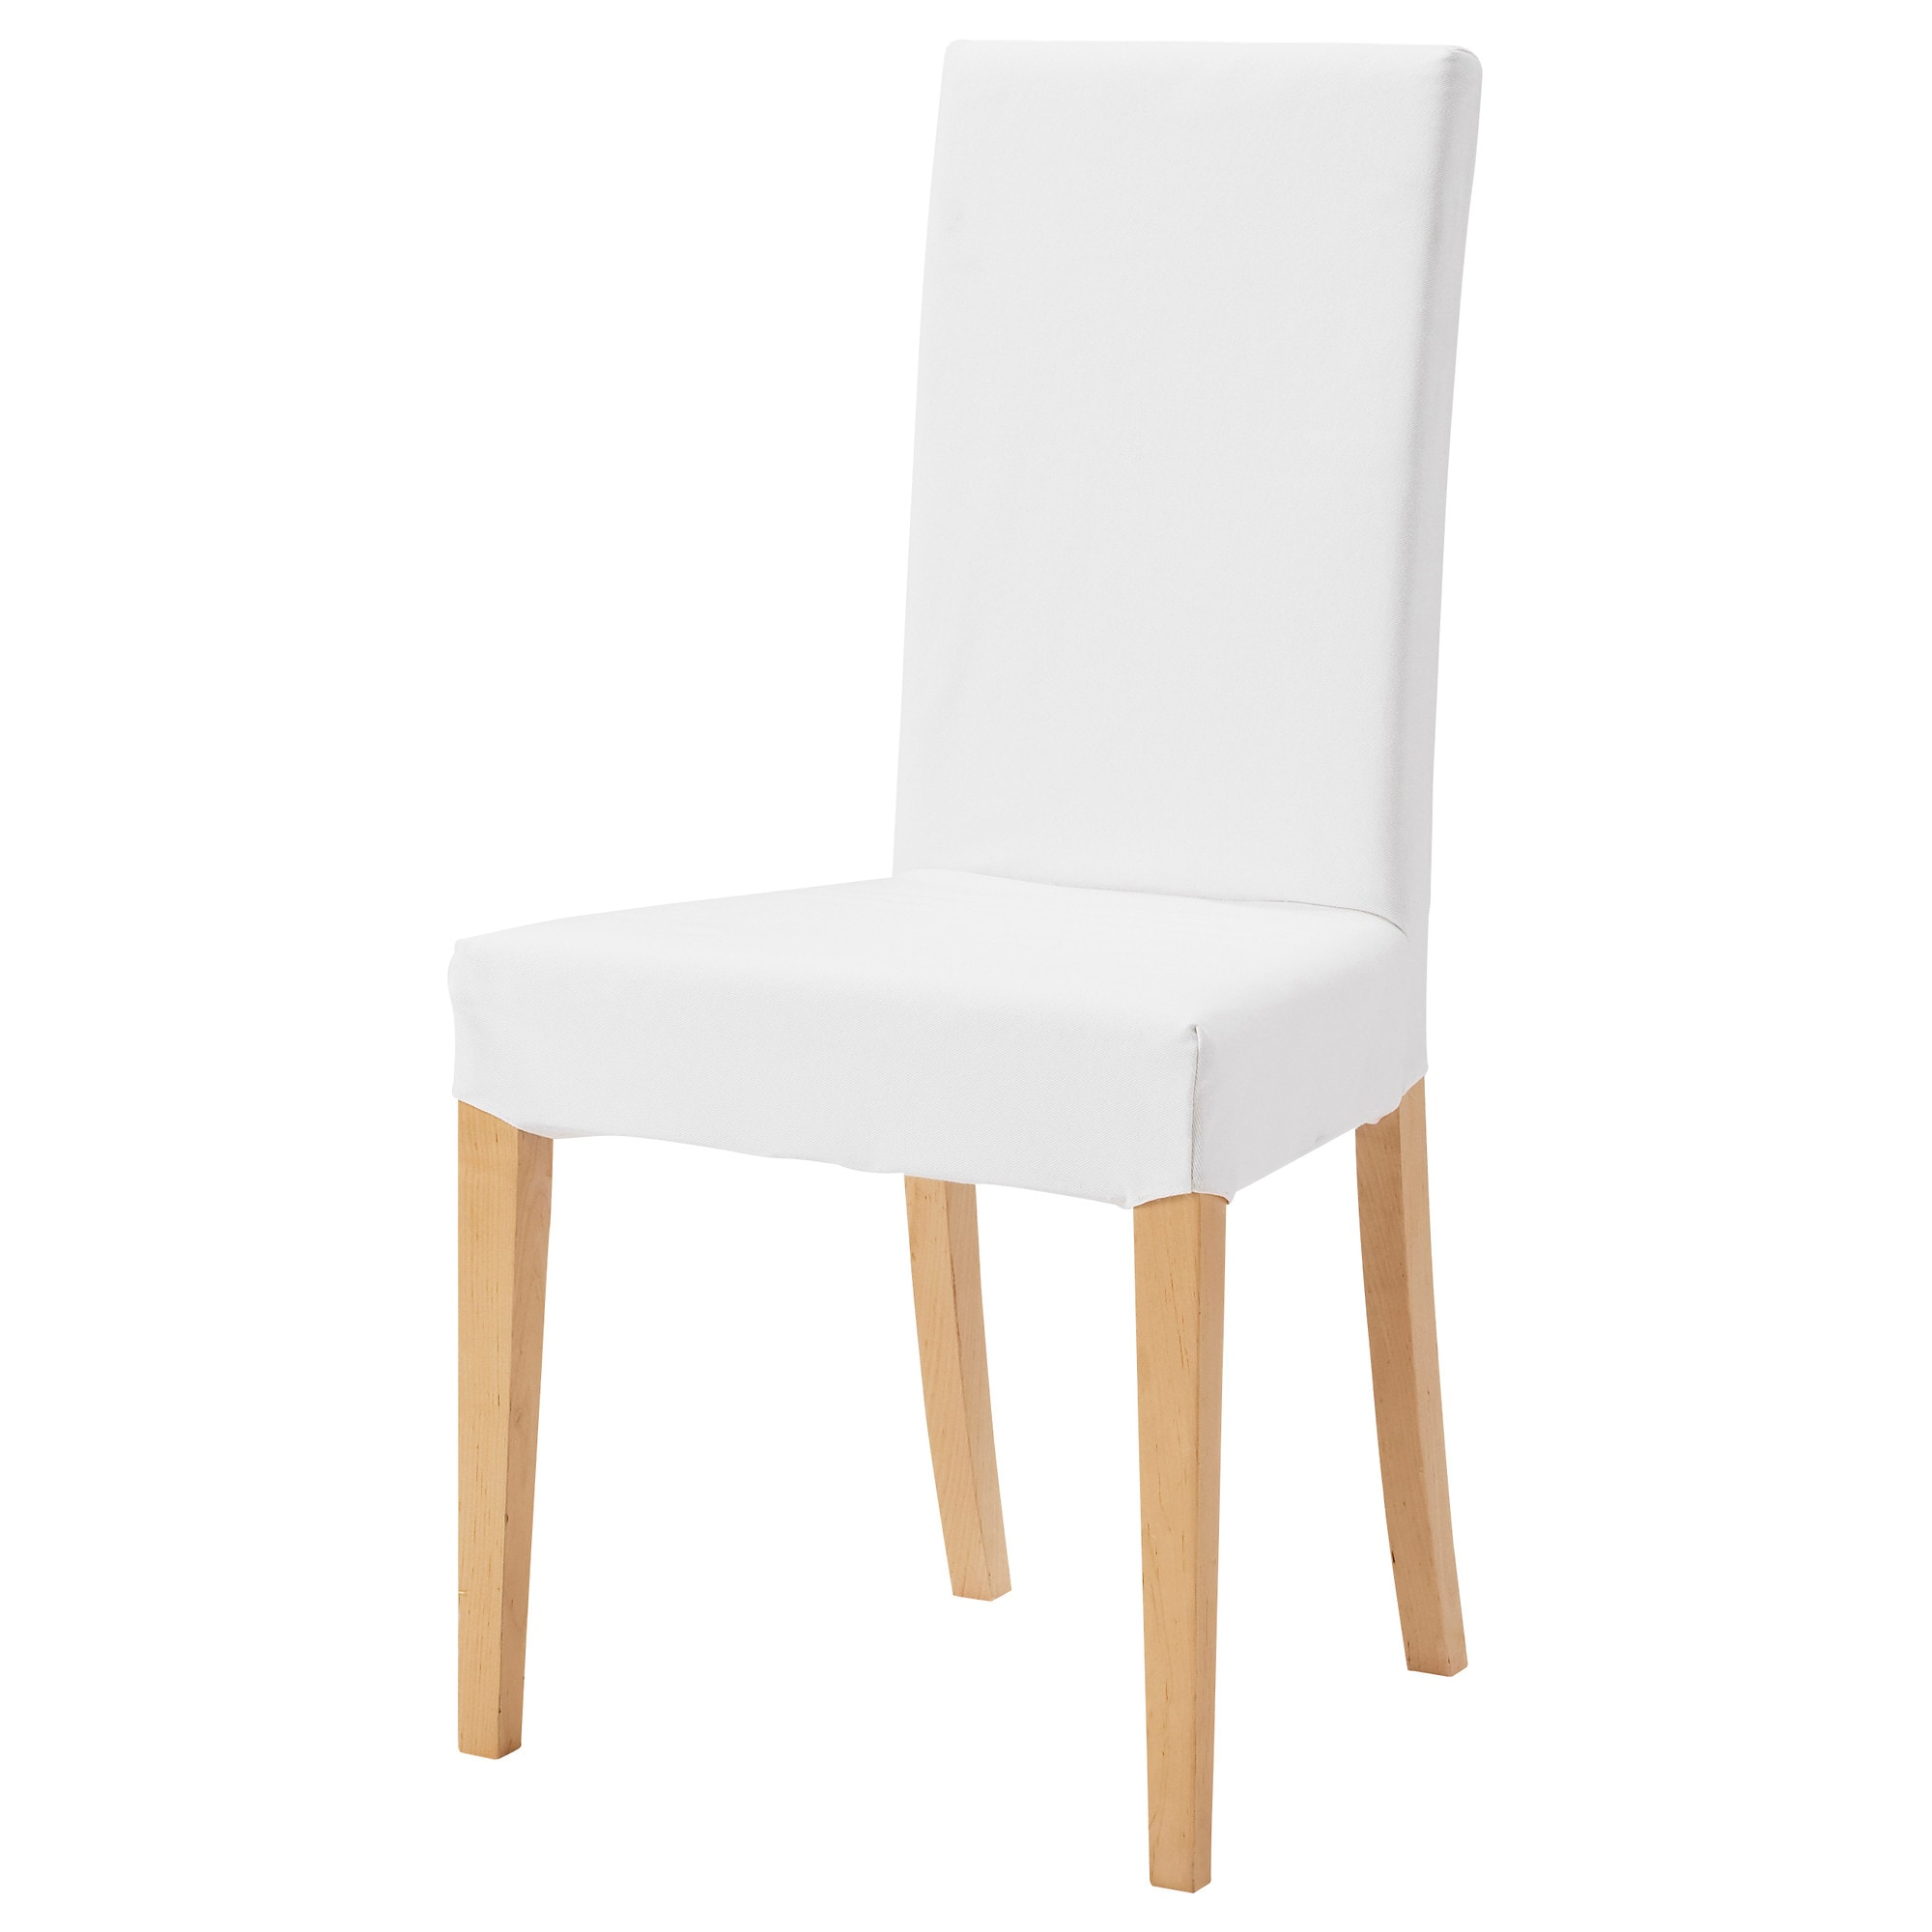 HARRY Chair Birch Blekinge White Tested For 243 Lb Width 18 7